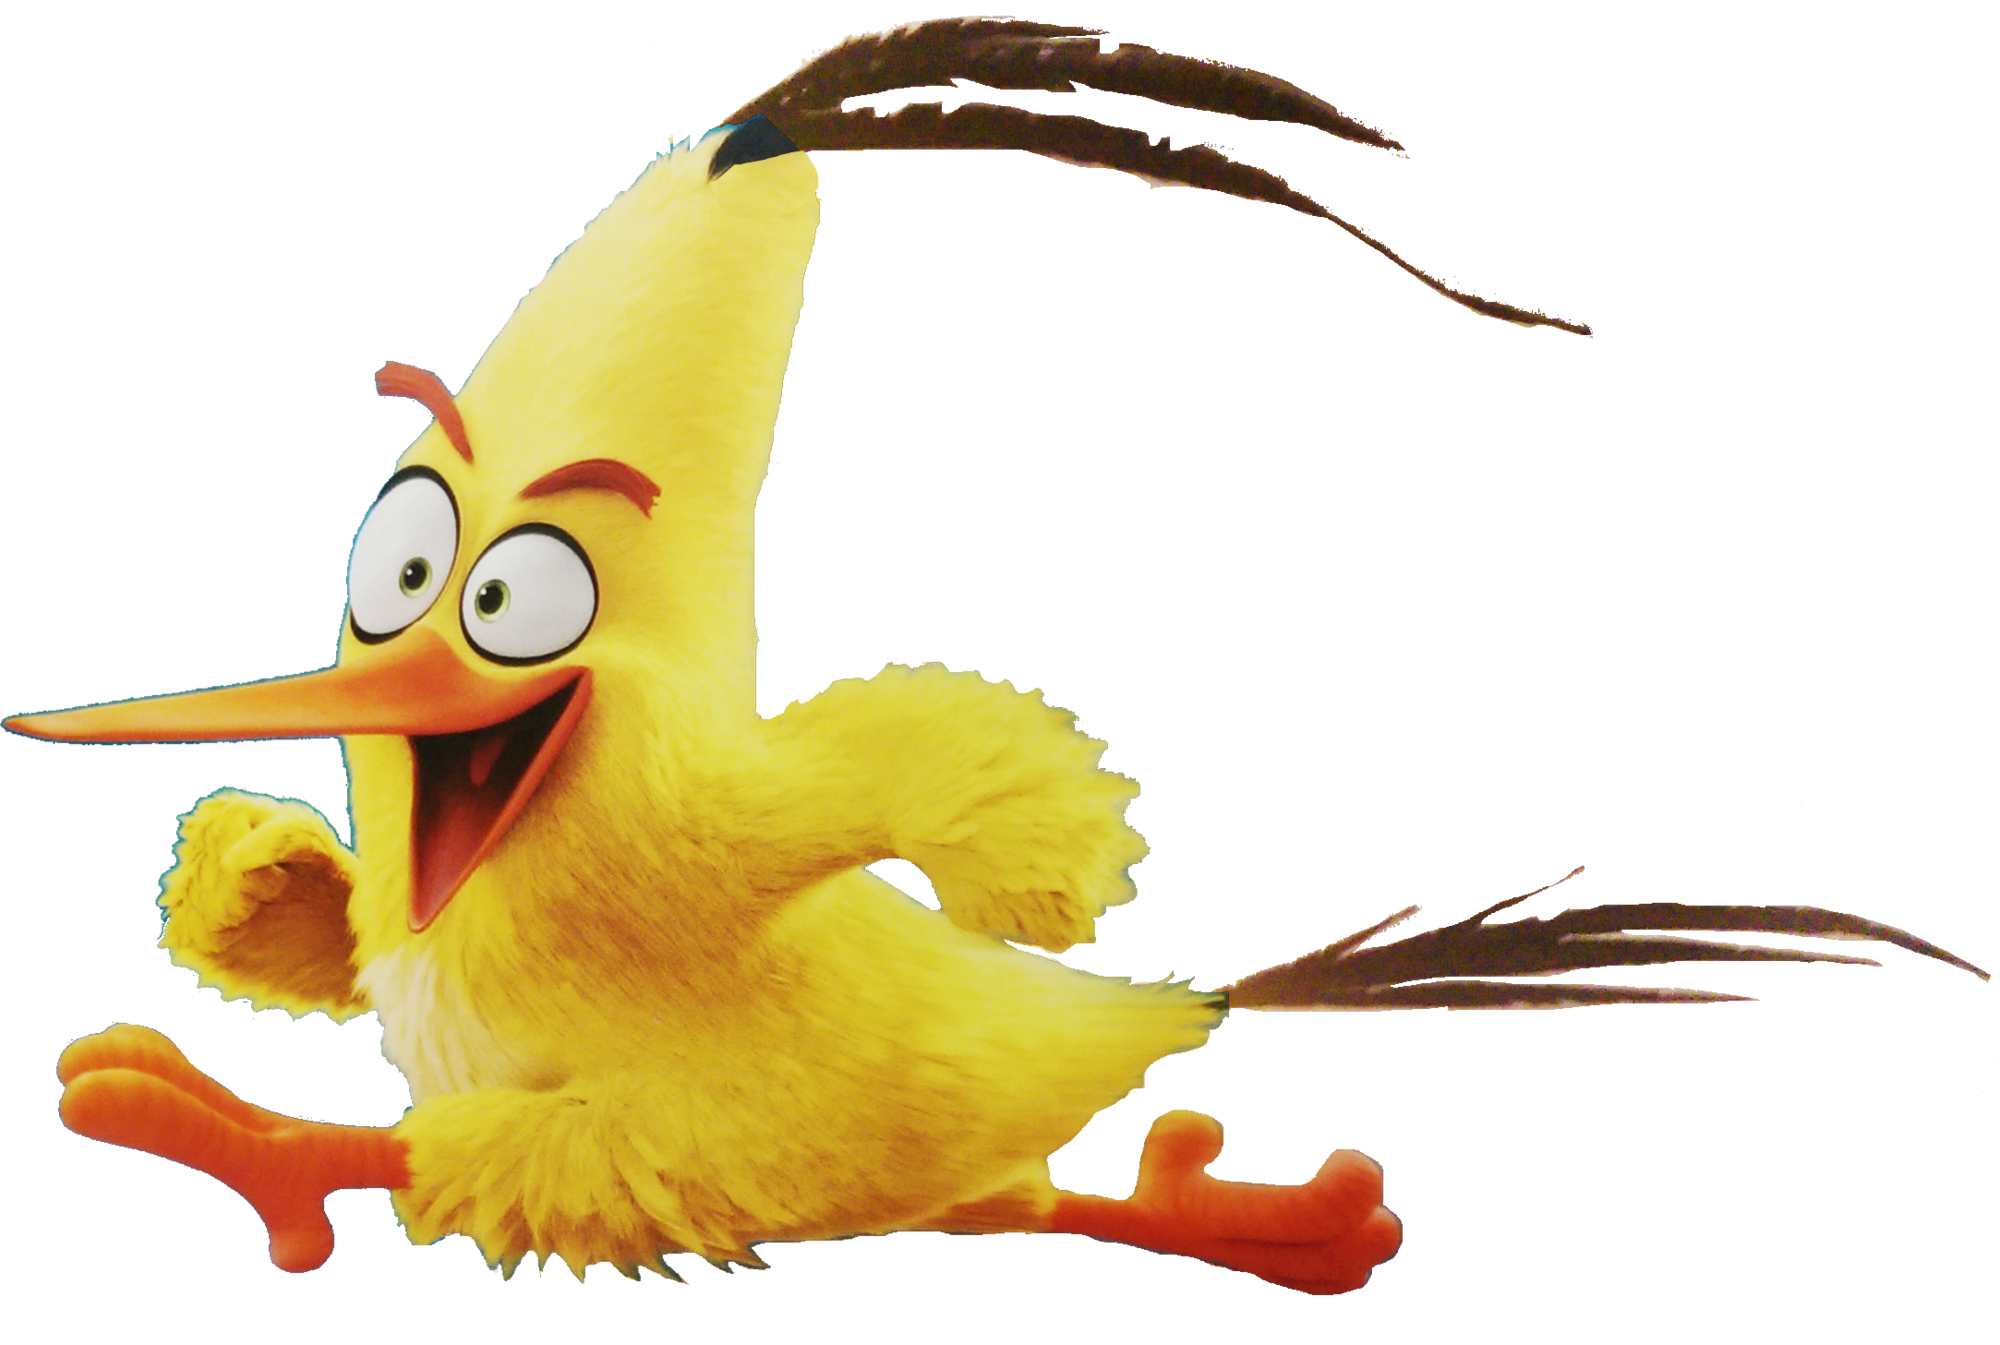 Images Of Angry Birds Characters: Chuck Angry Birds Movie Characters